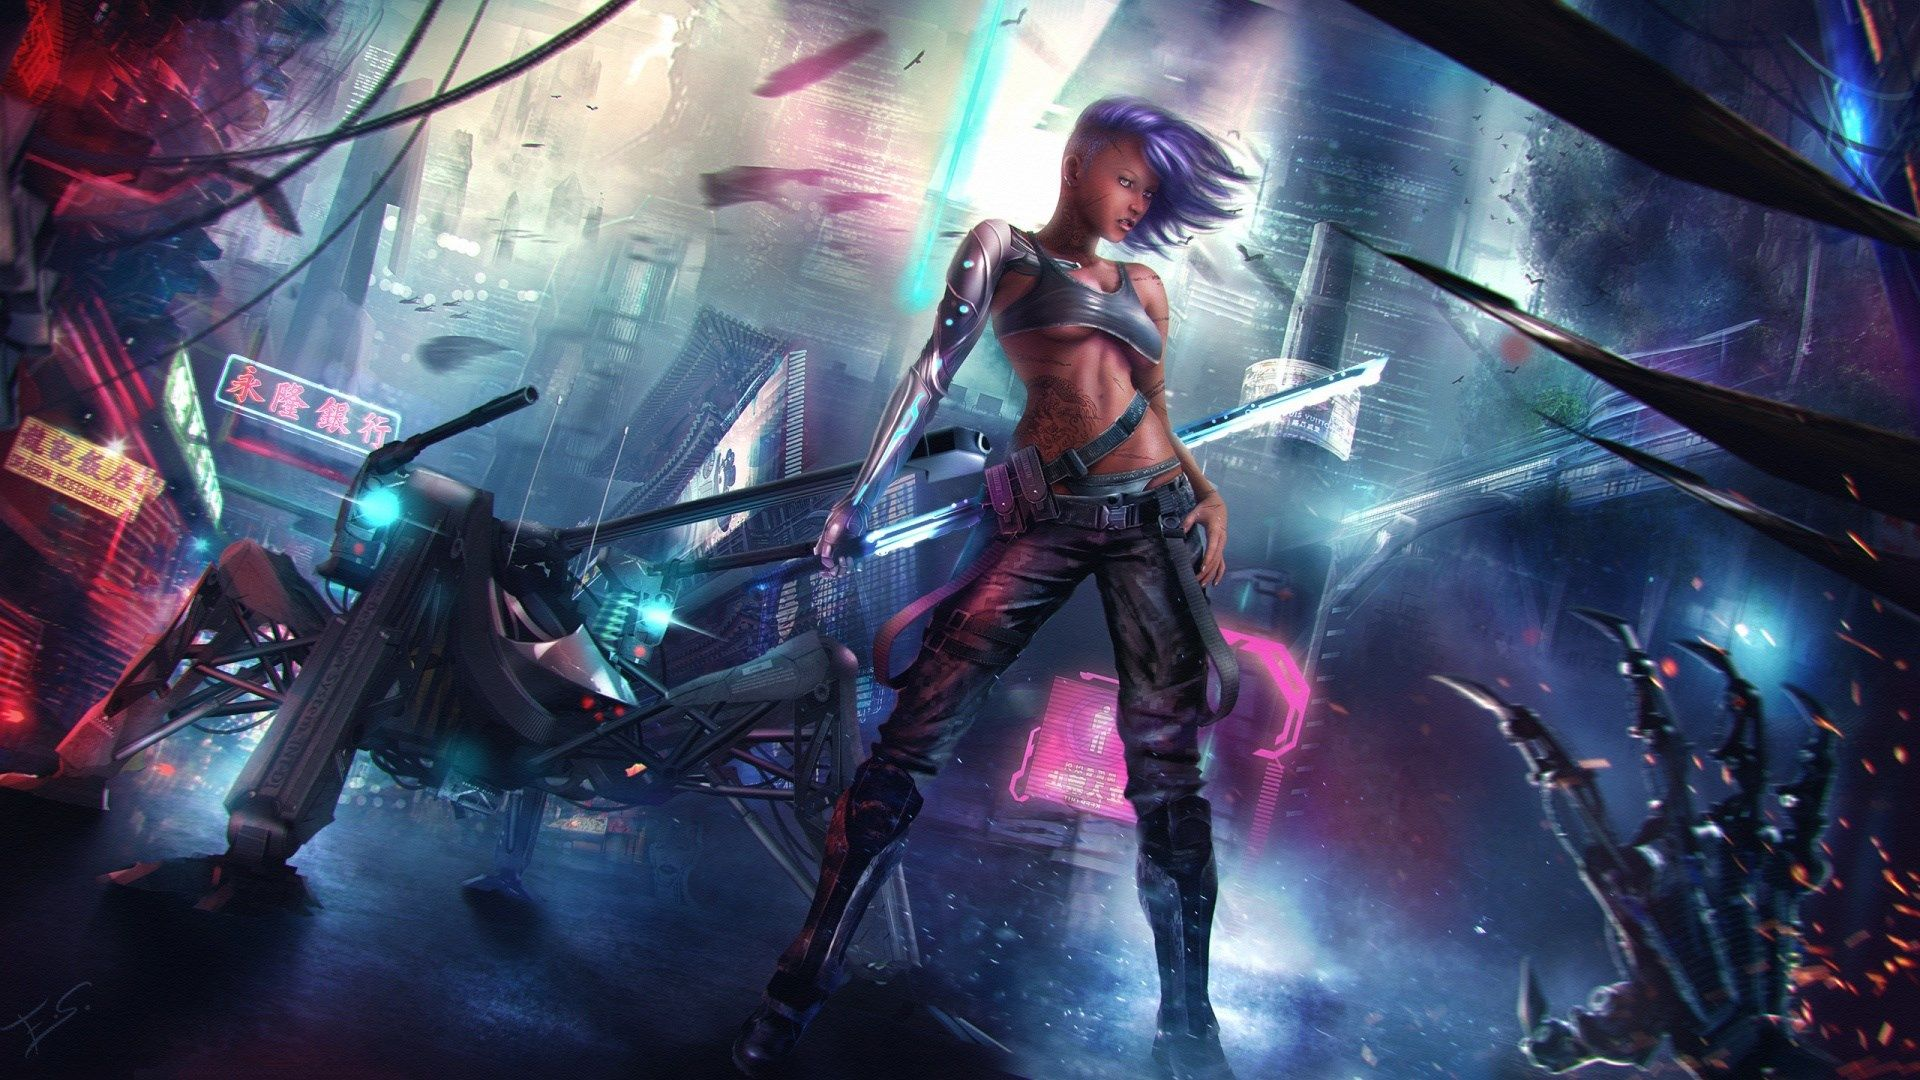 free download cyberpunk background Cyberpunk girl